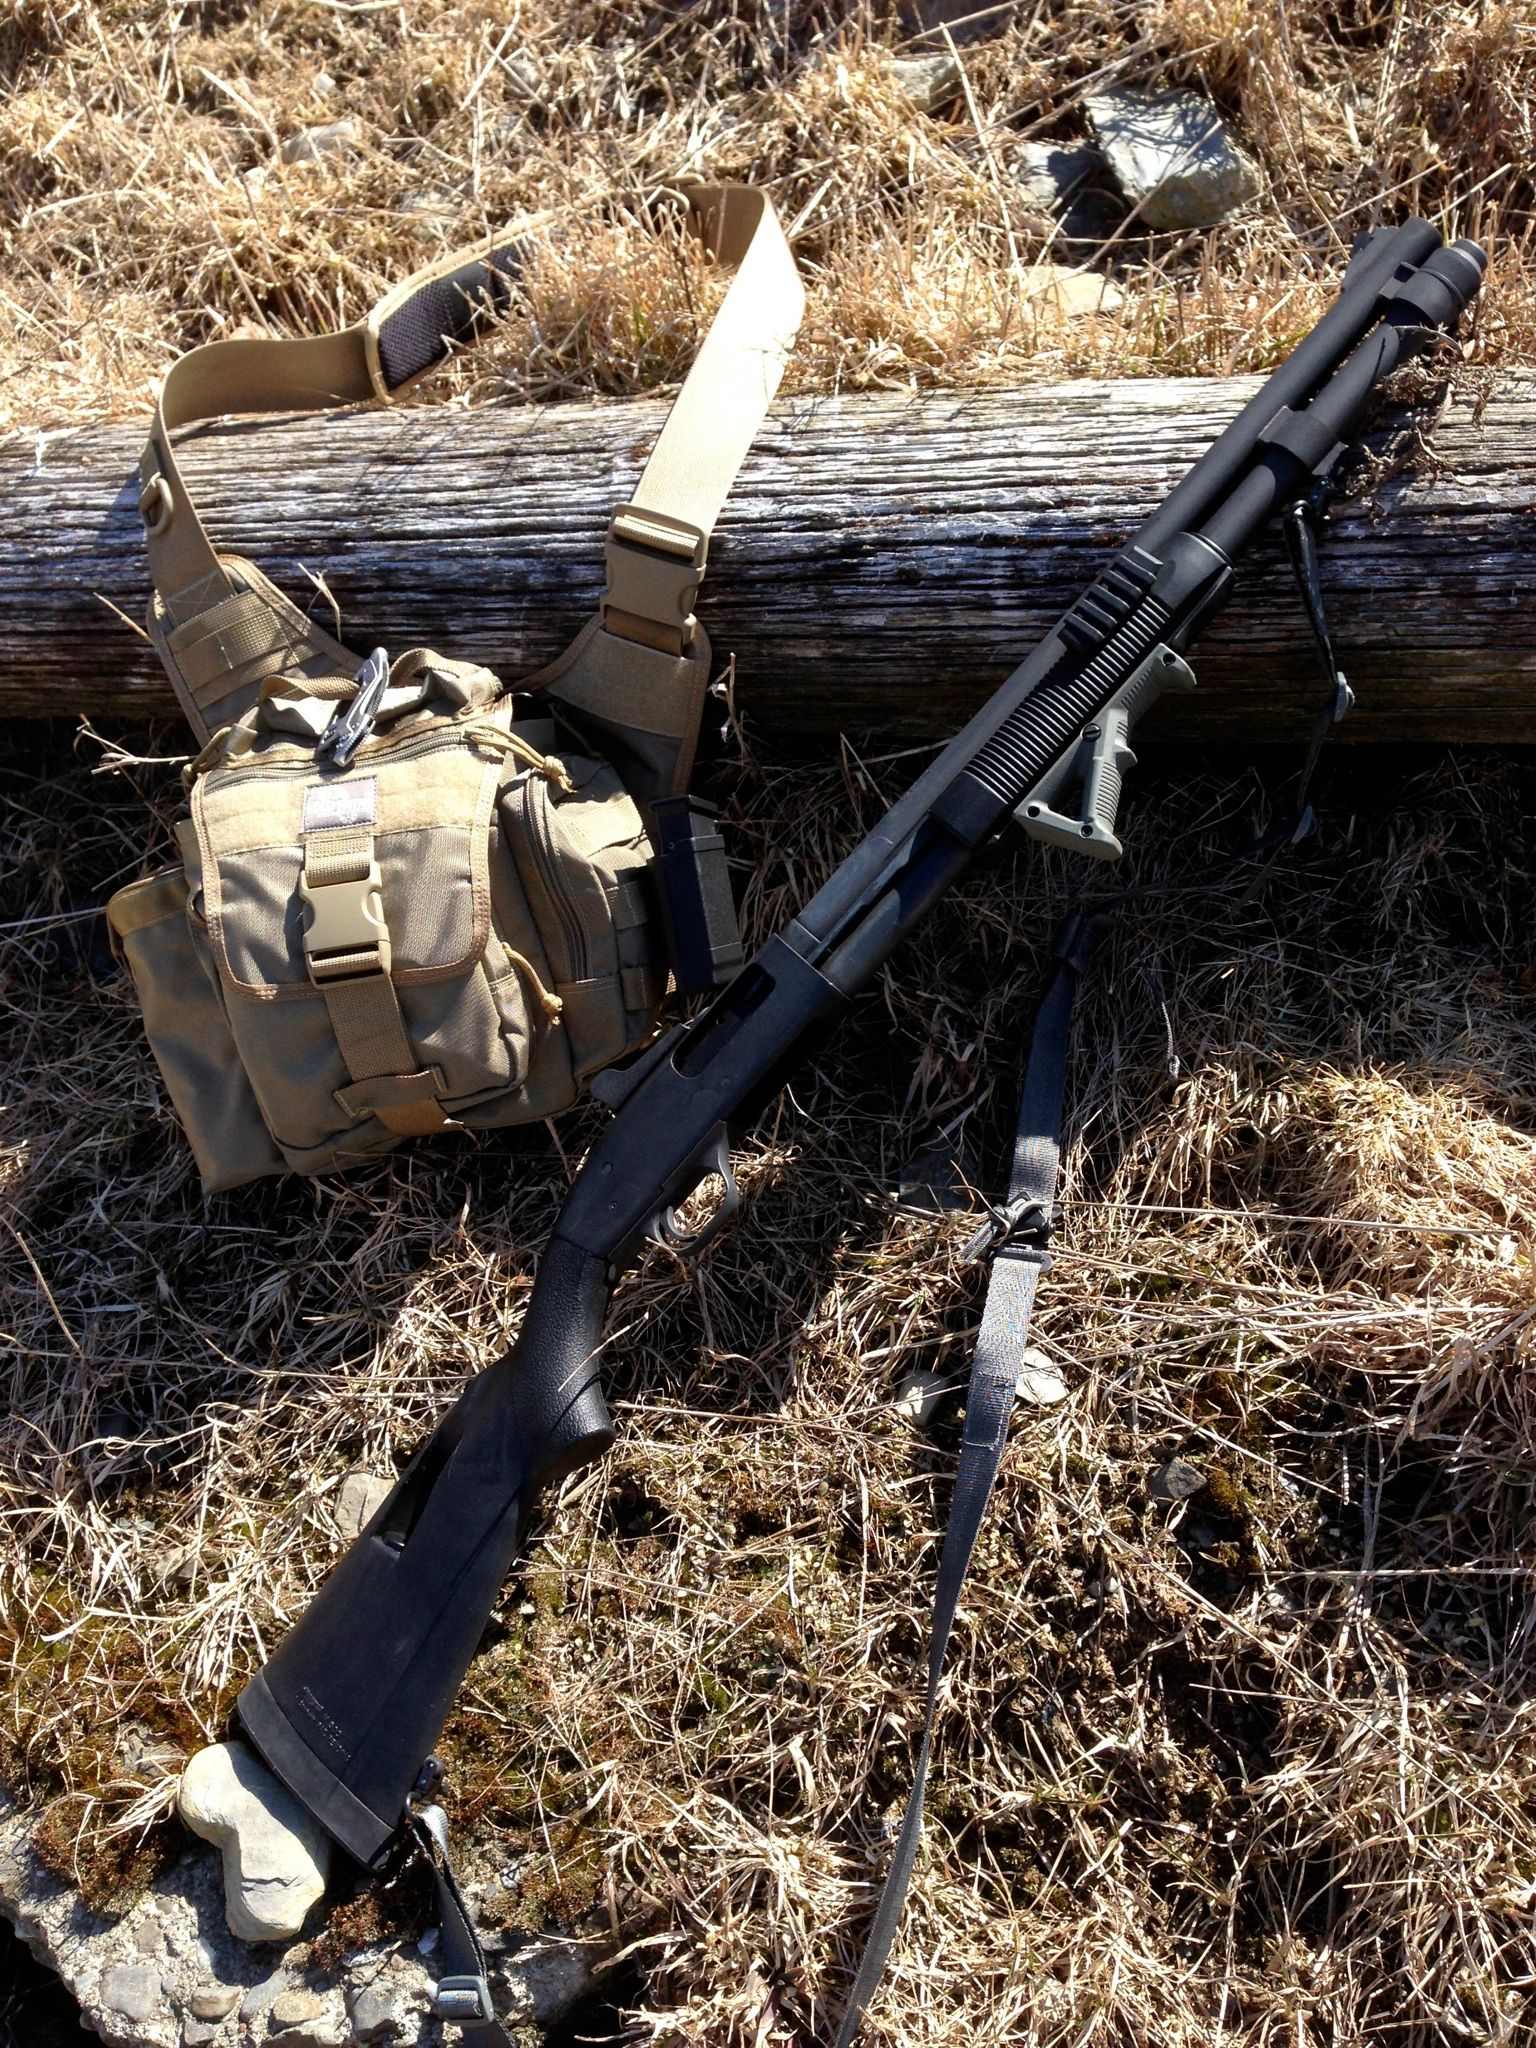 """Mossberg 590A1 with Viking Tactics Sling, GGG QD sling swivels, Magpul AFG, tri-rail MOE Forearm, QTac Weaponlight mount, Speedfeed Stock, GhostRing Sight, & 9 rounds of """"wrong fucking house dipshit!"""""""